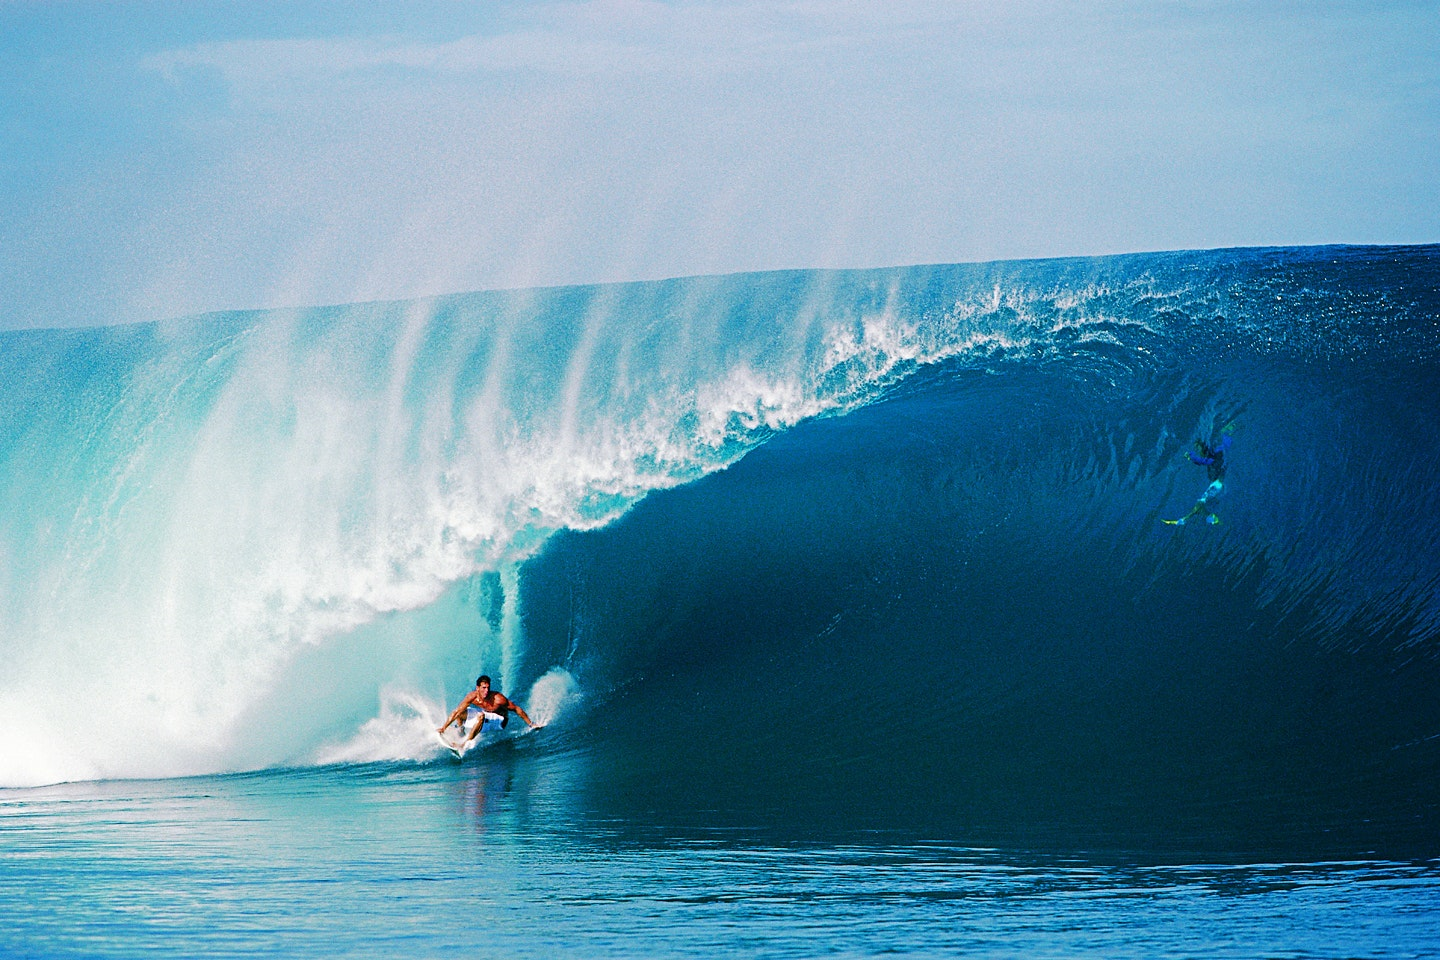 Andy Irons at Teahupoo, on one of the best waves of his career, shot by Tom Servais